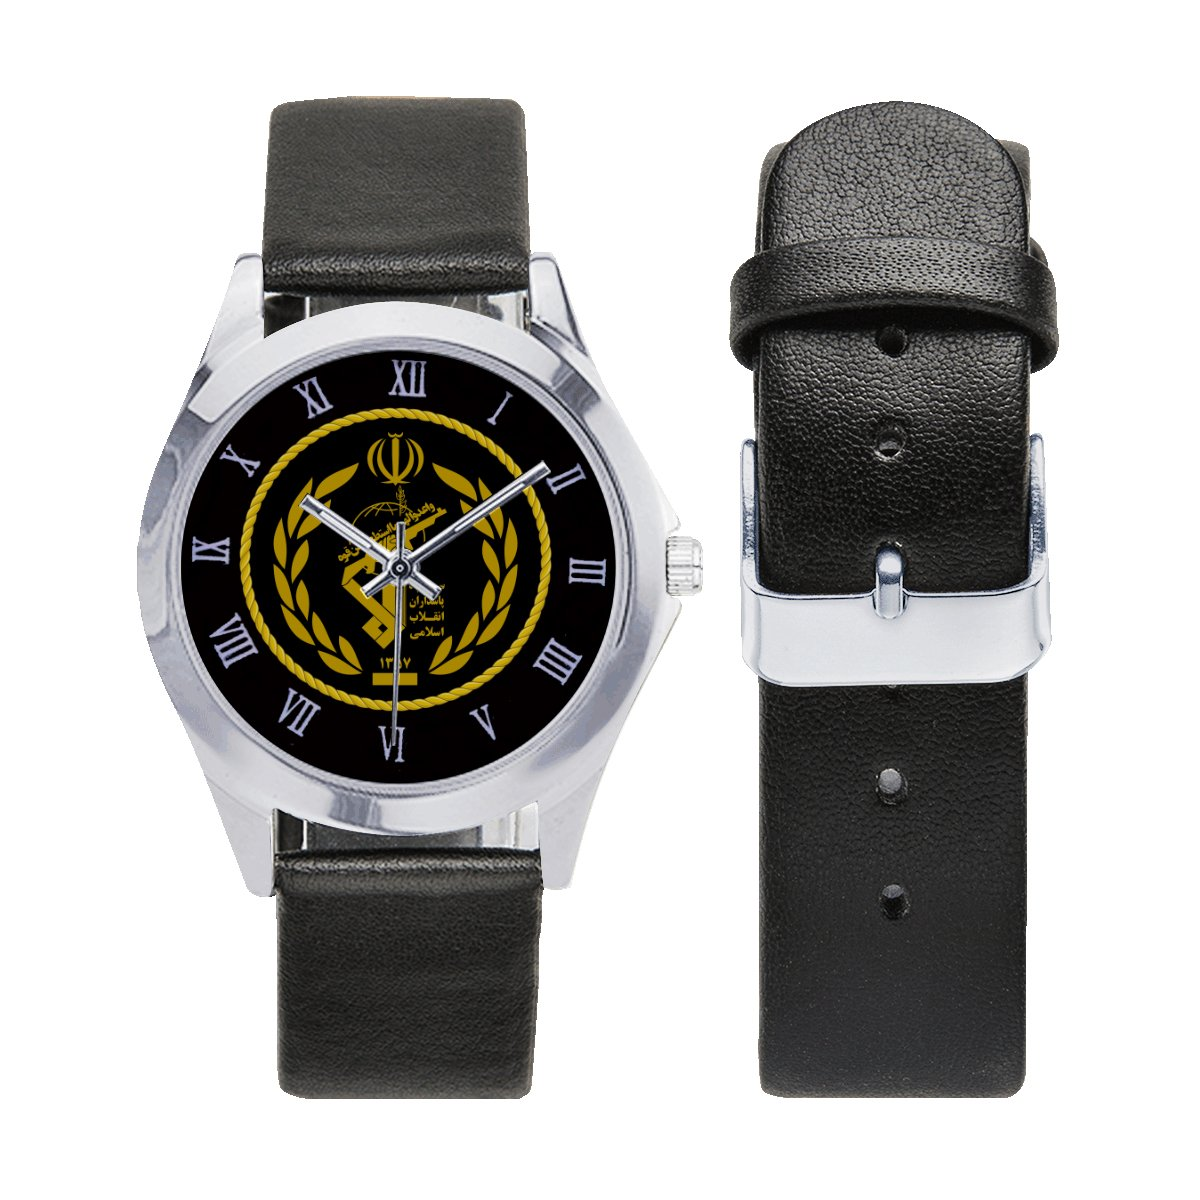 Iran Islamic Revolutionary Guard Corps Leather Strap Watch Wrist Watches a perfect accessory